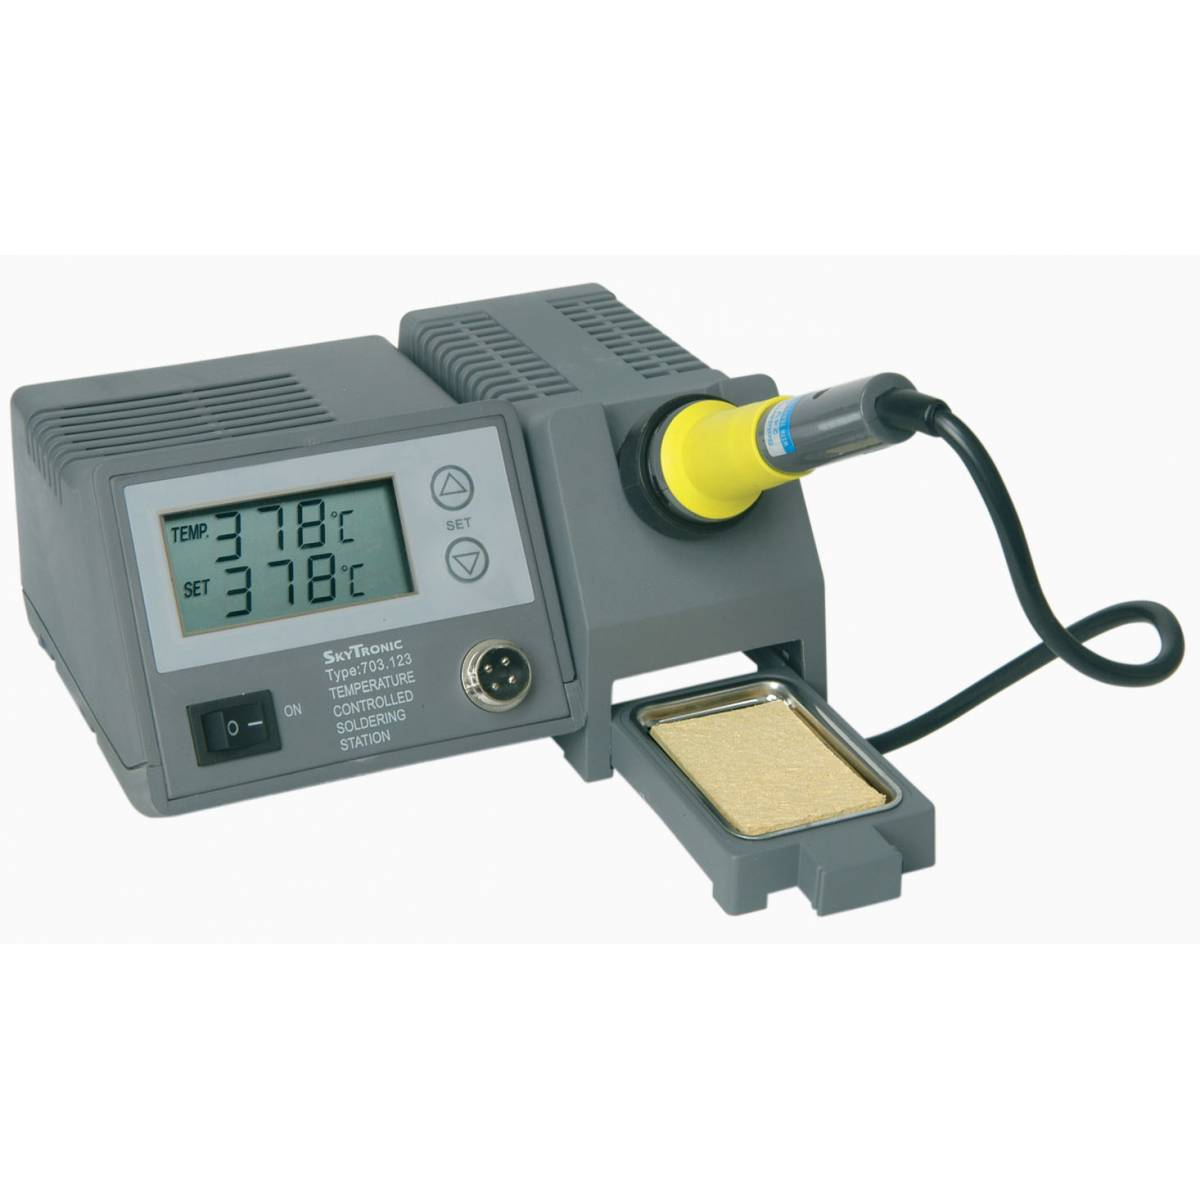 Digital Soldering Station : Skytronic digital soldering station